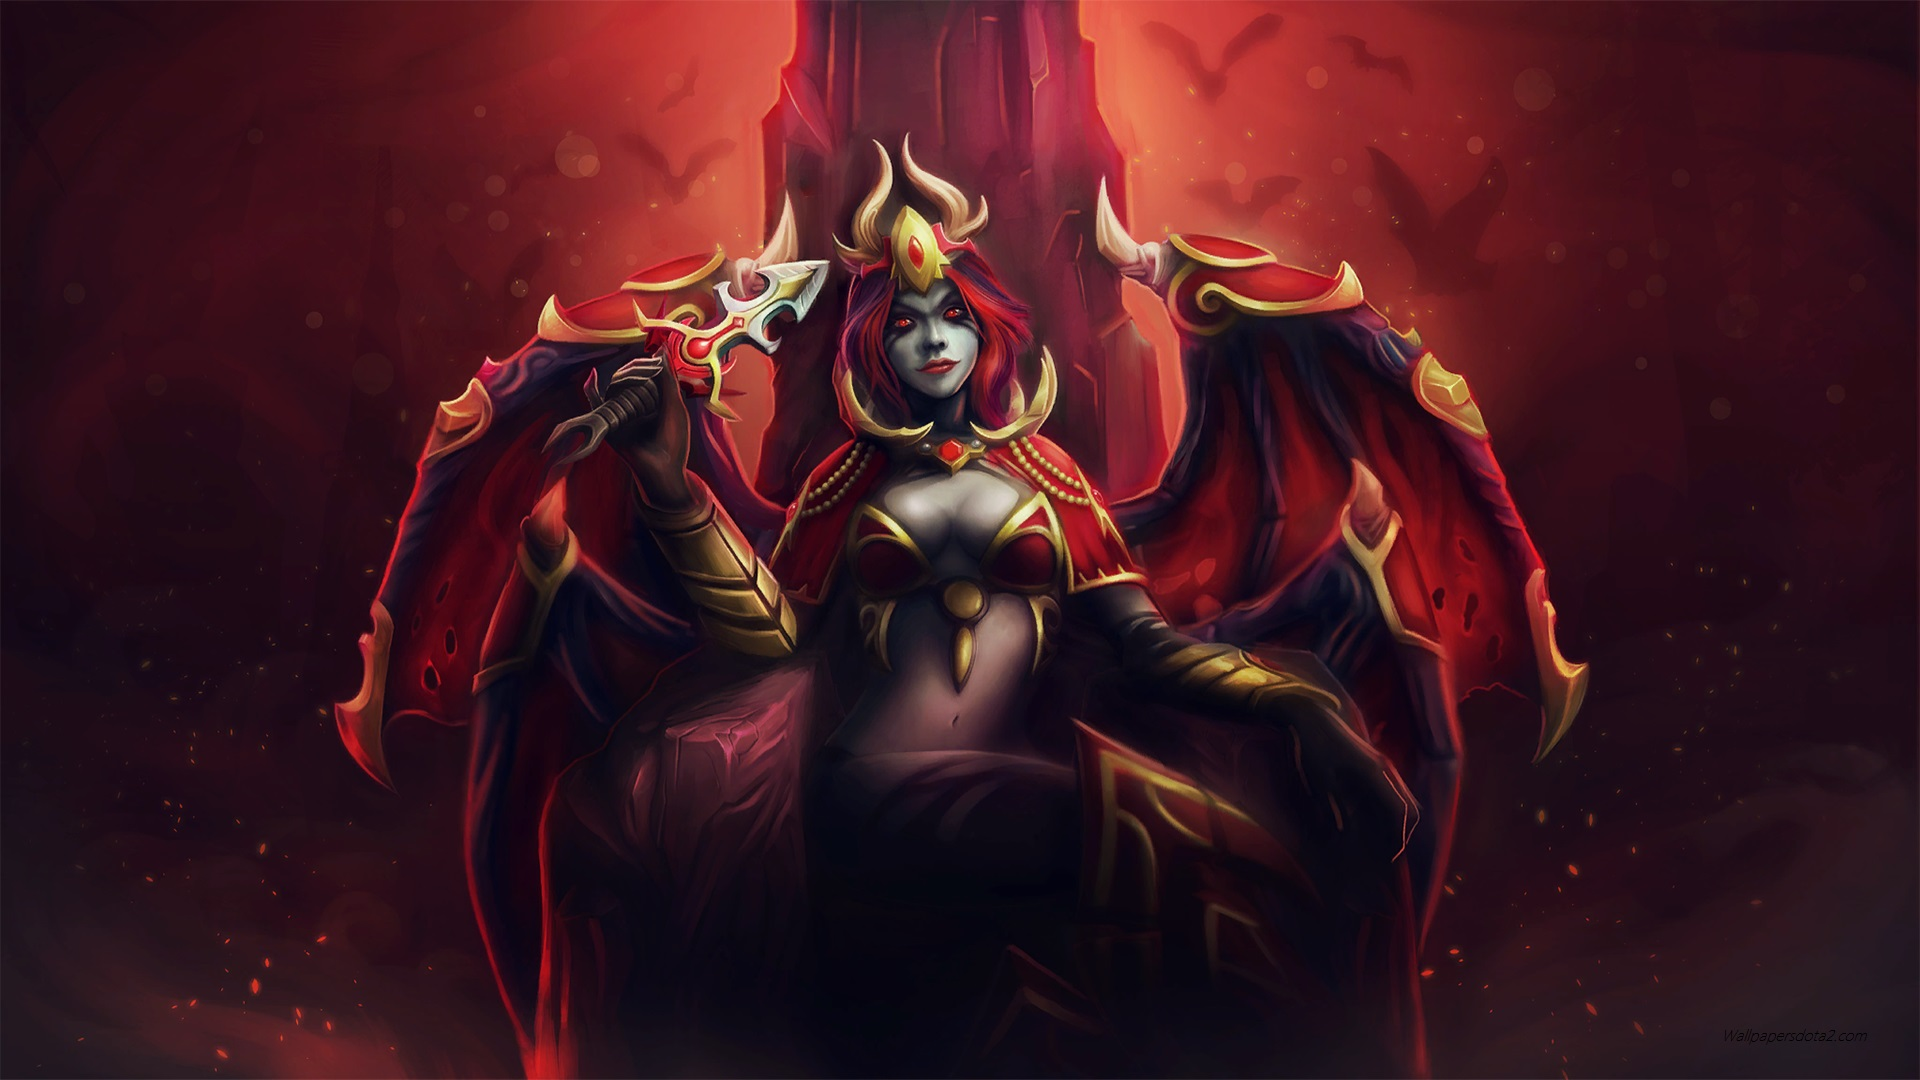 Queen of Pain Set Sanguine Royalty